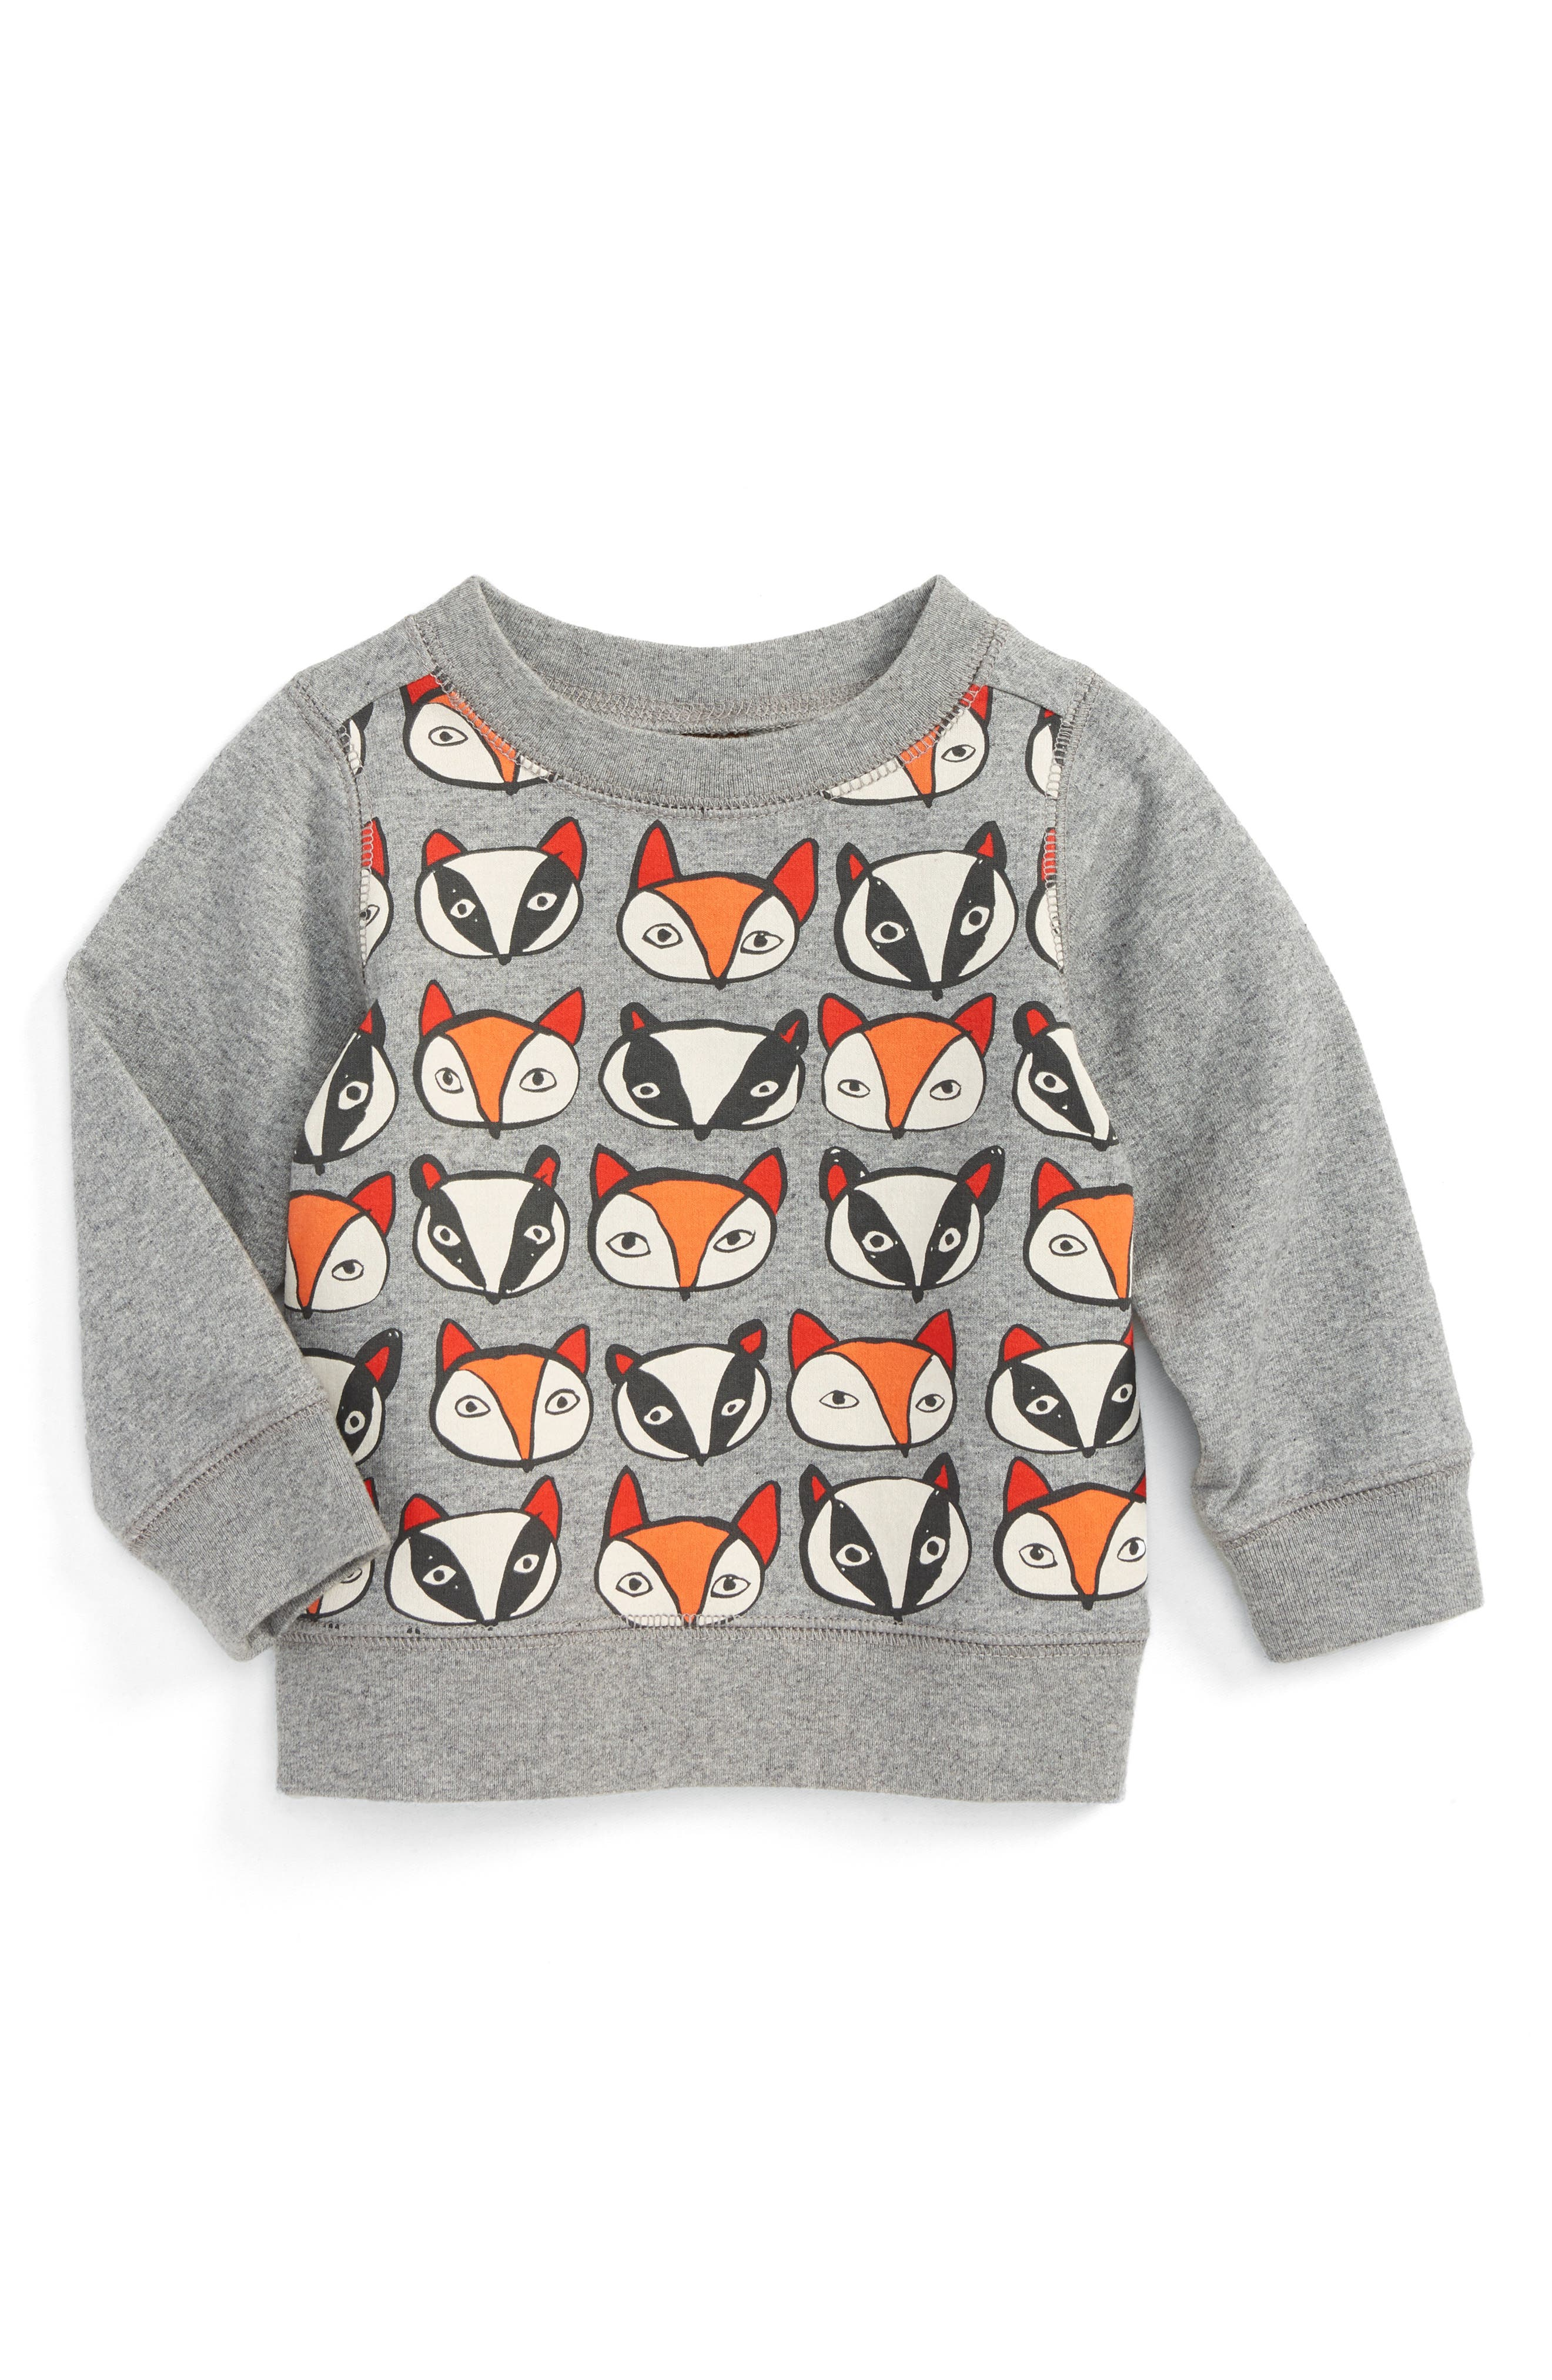 Alternate Image 1 Selected - Tea Collection Fox & Badger Print Sweater (Baby Boys)